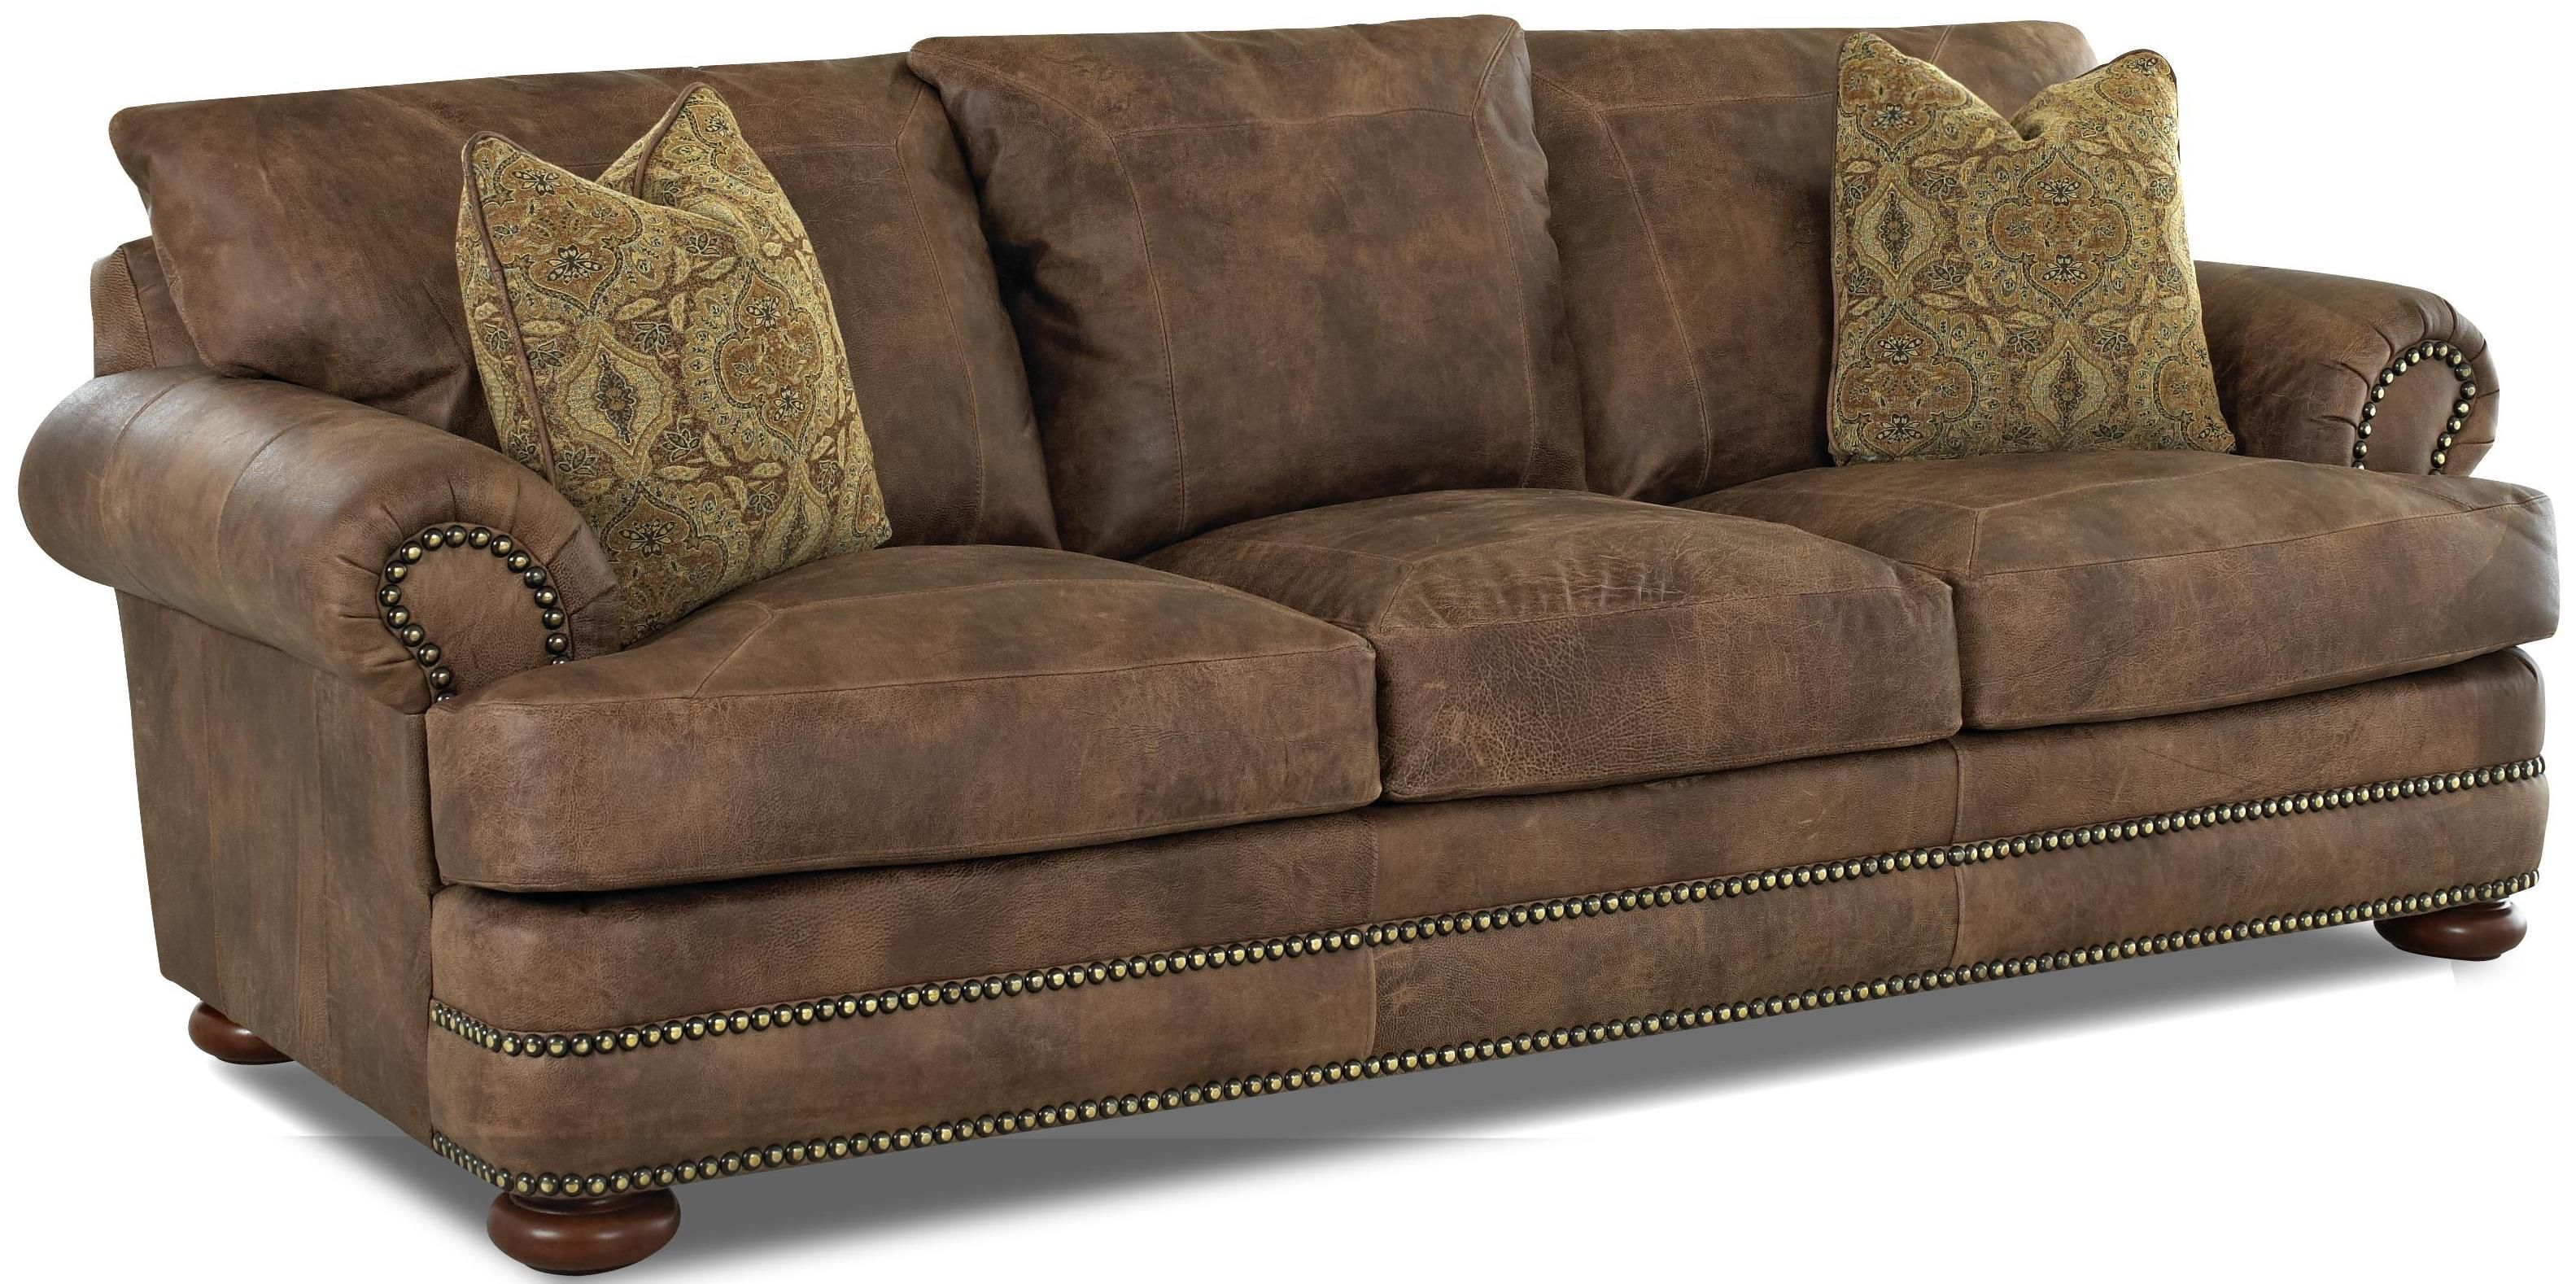 Montezuma Casual Style Leather Sofa With Bun Feet By Klaussner